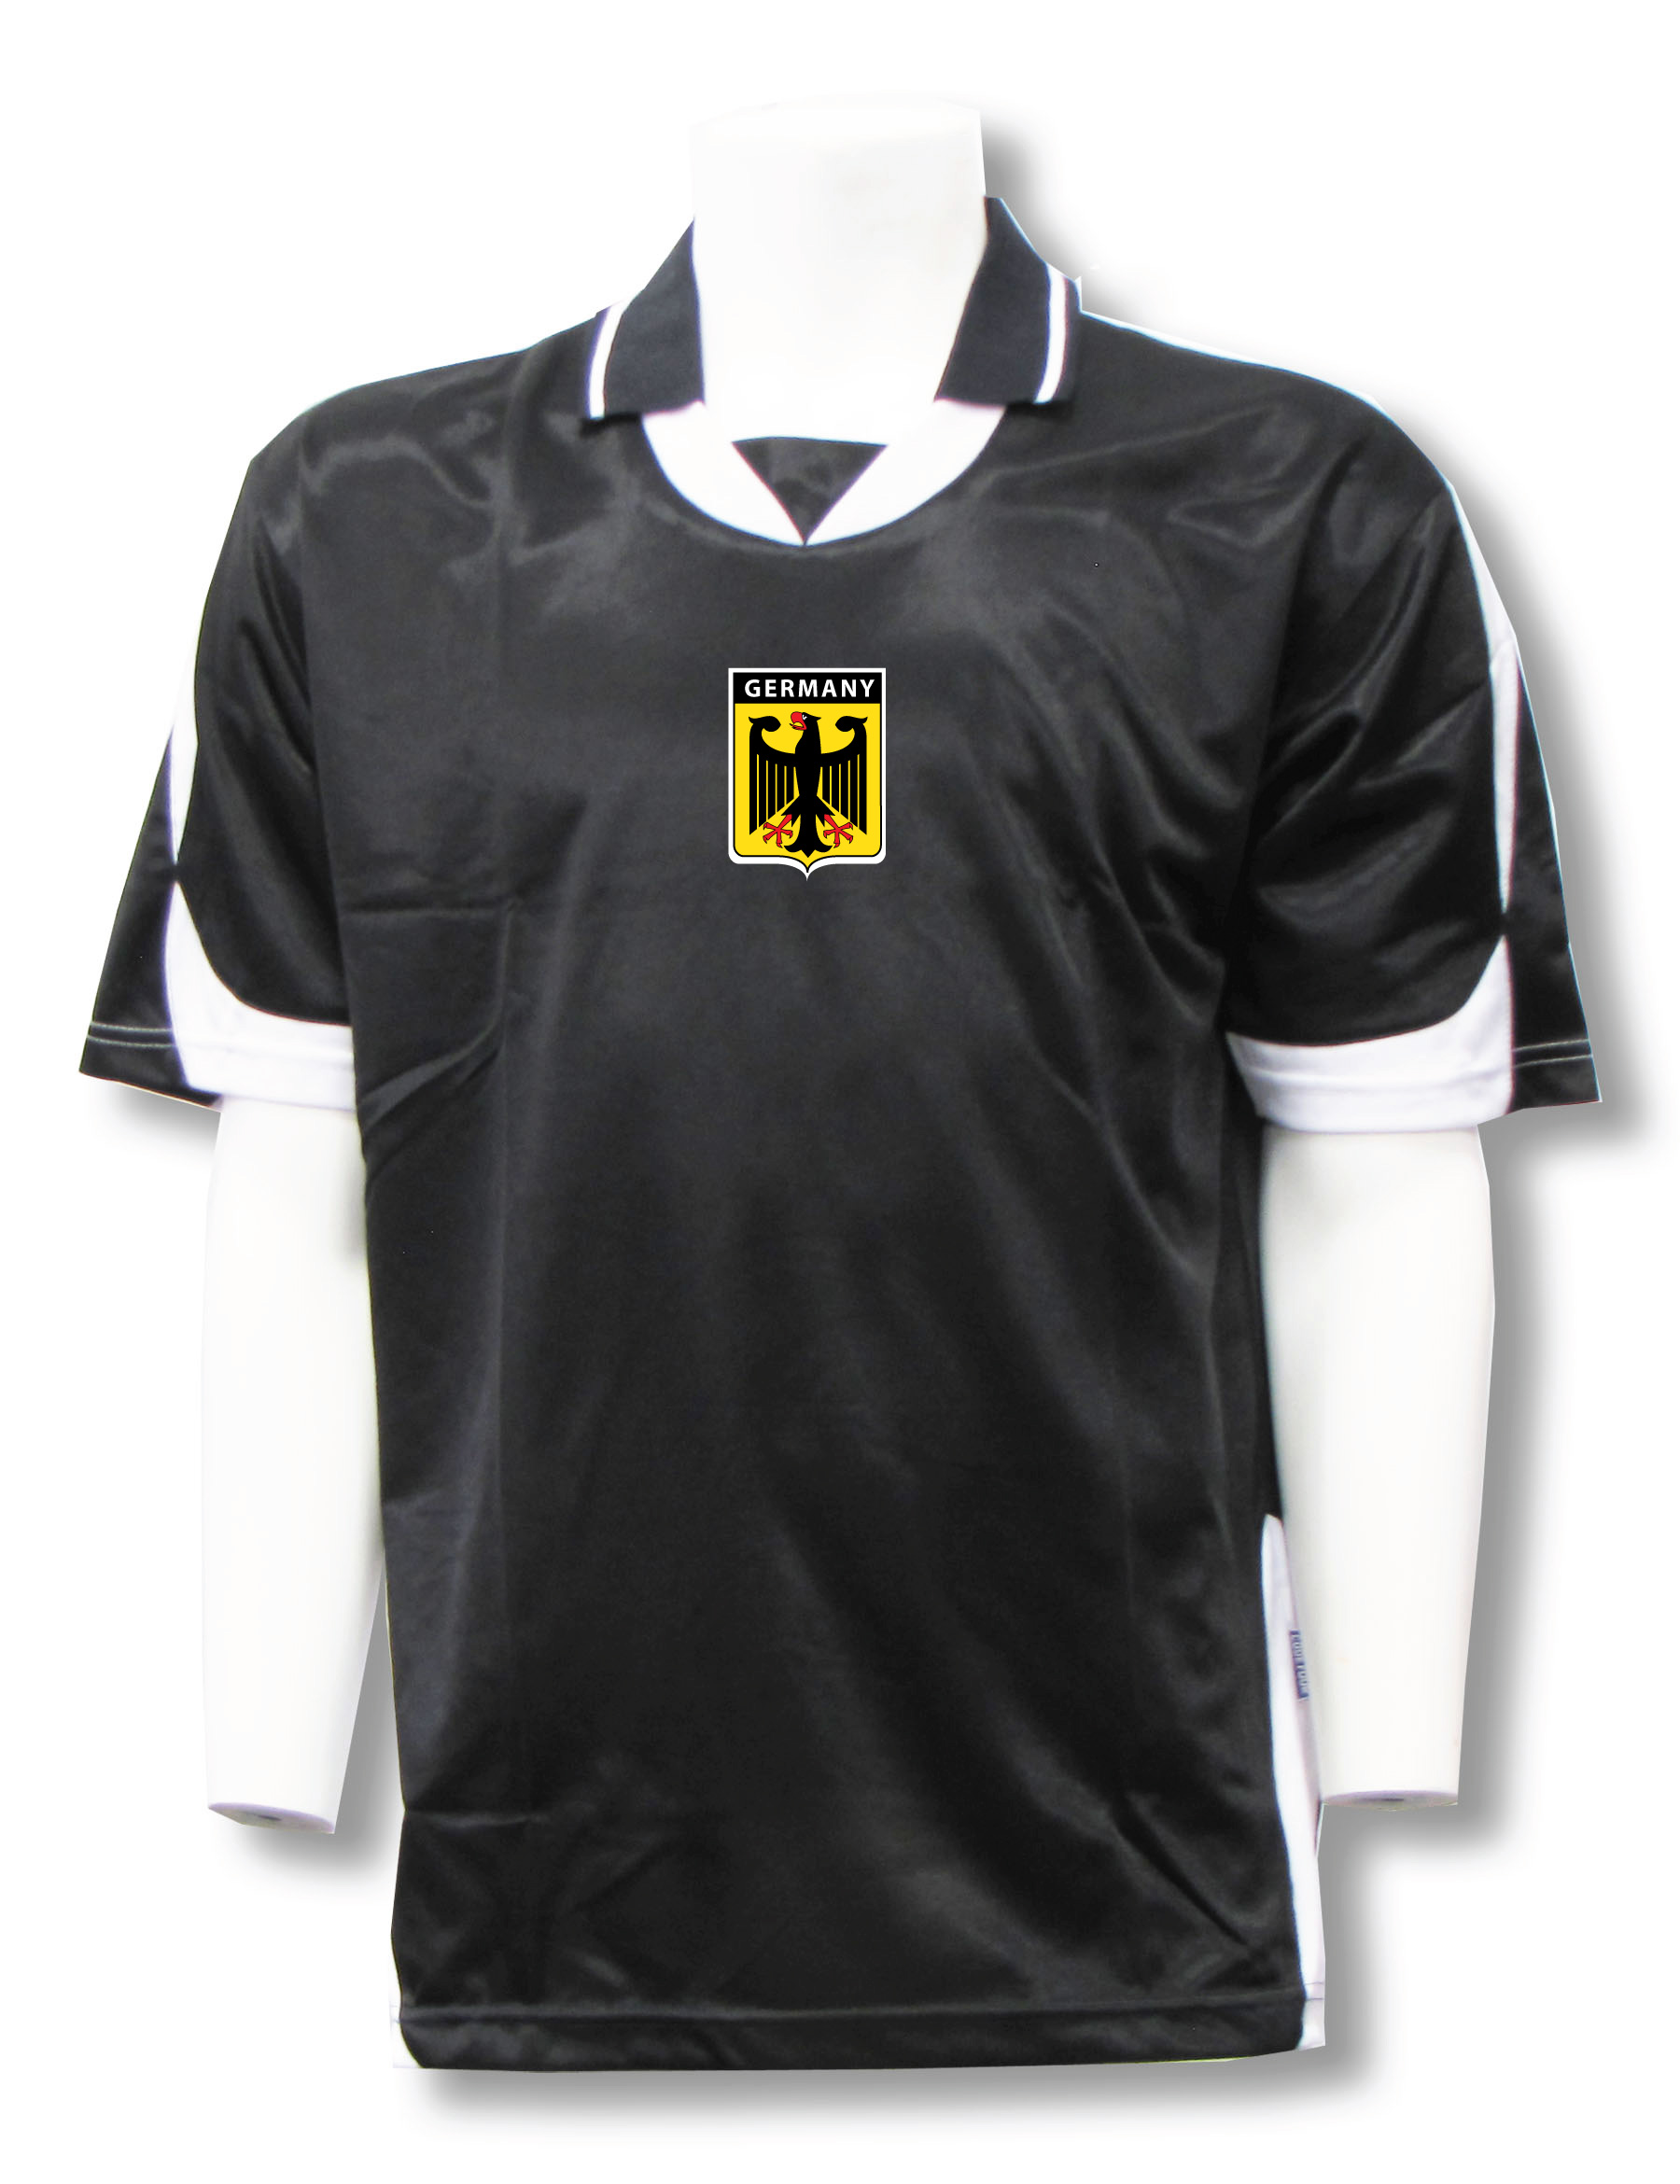 Germany soccer jersey in black/white Alpha